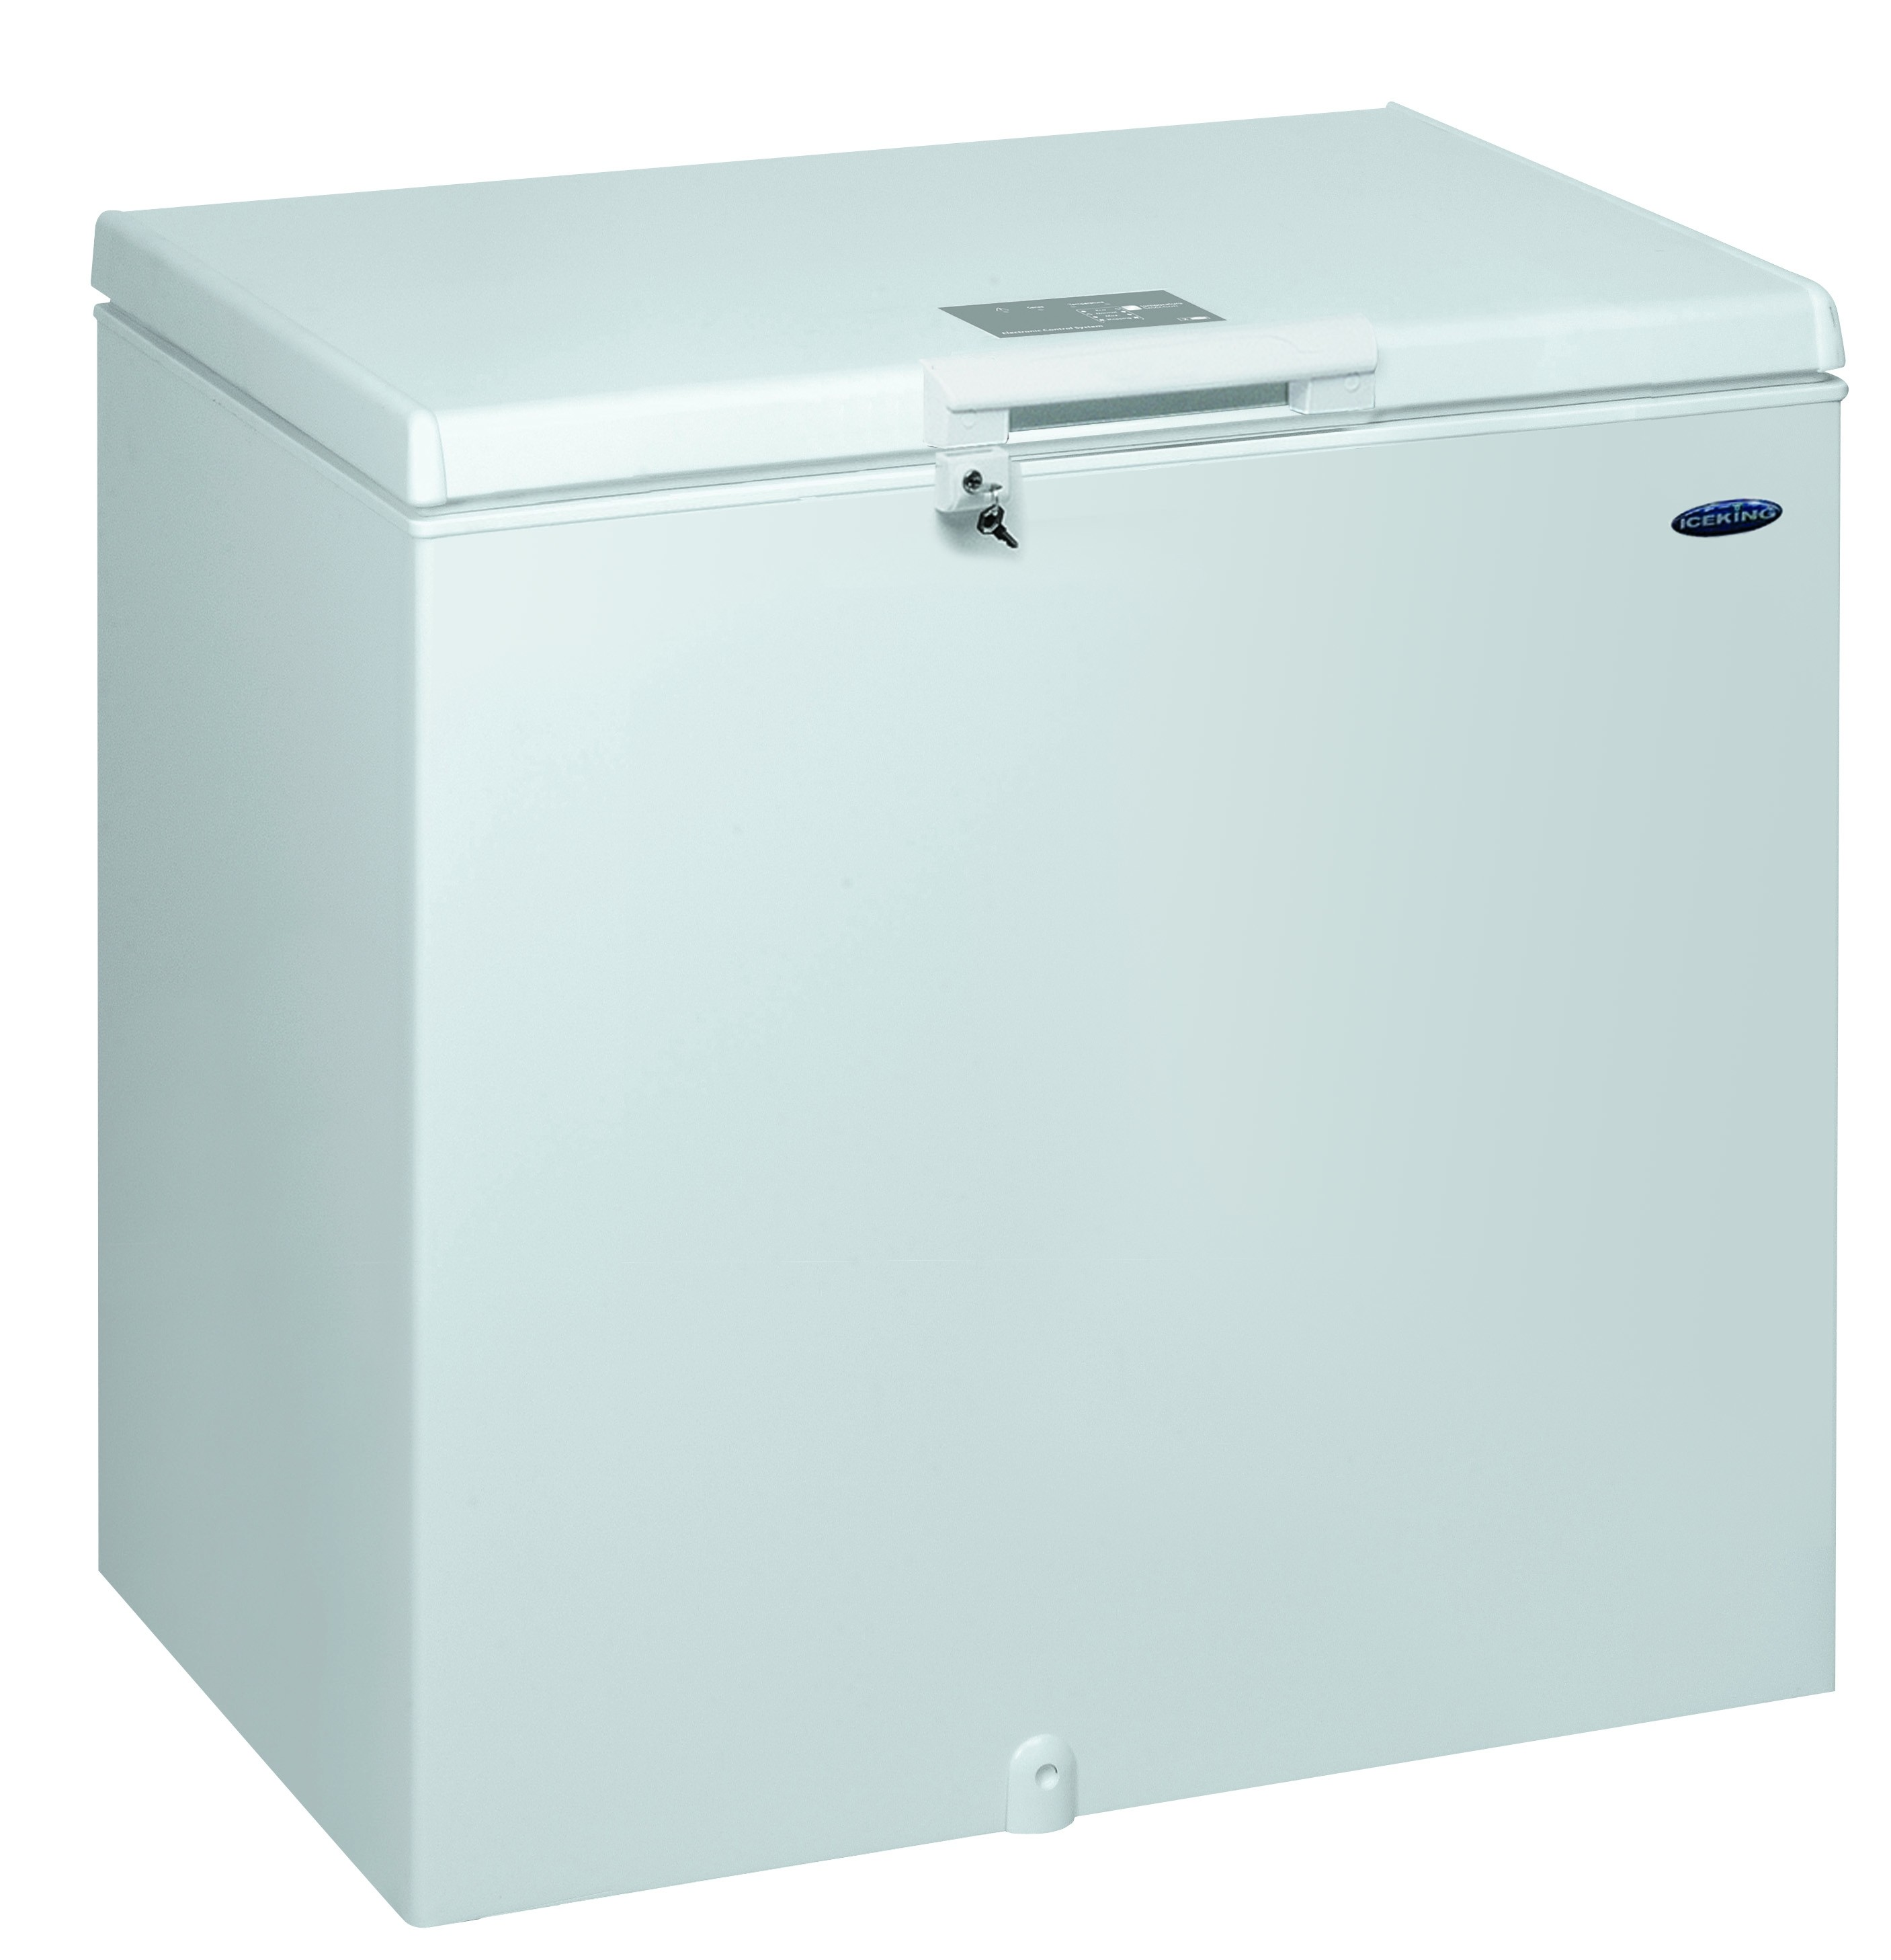 Iceking CF252W Freezer